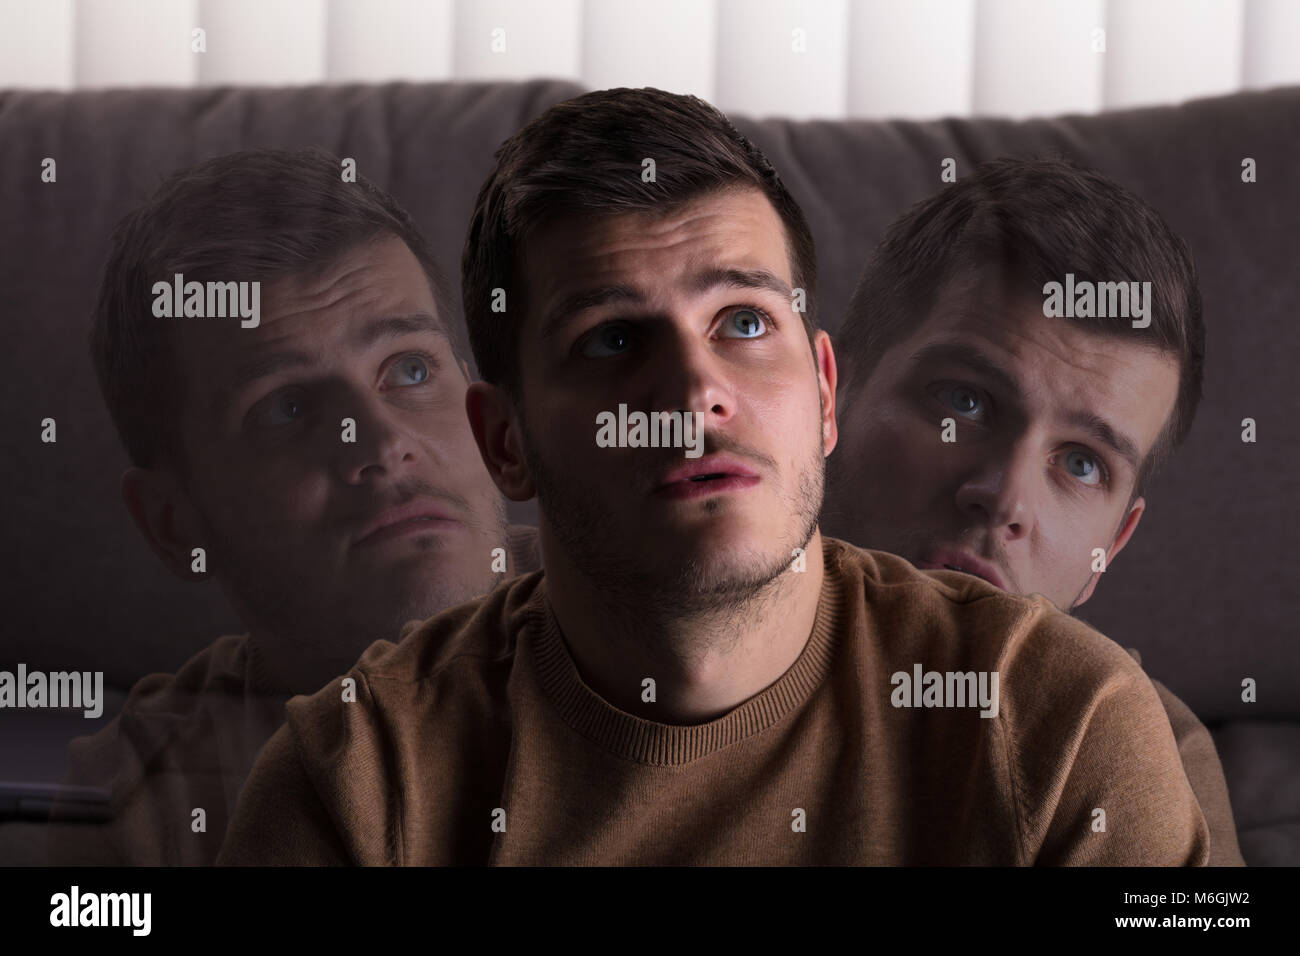 Multi Exposure Of Contemplated Man At Home - Stock Image